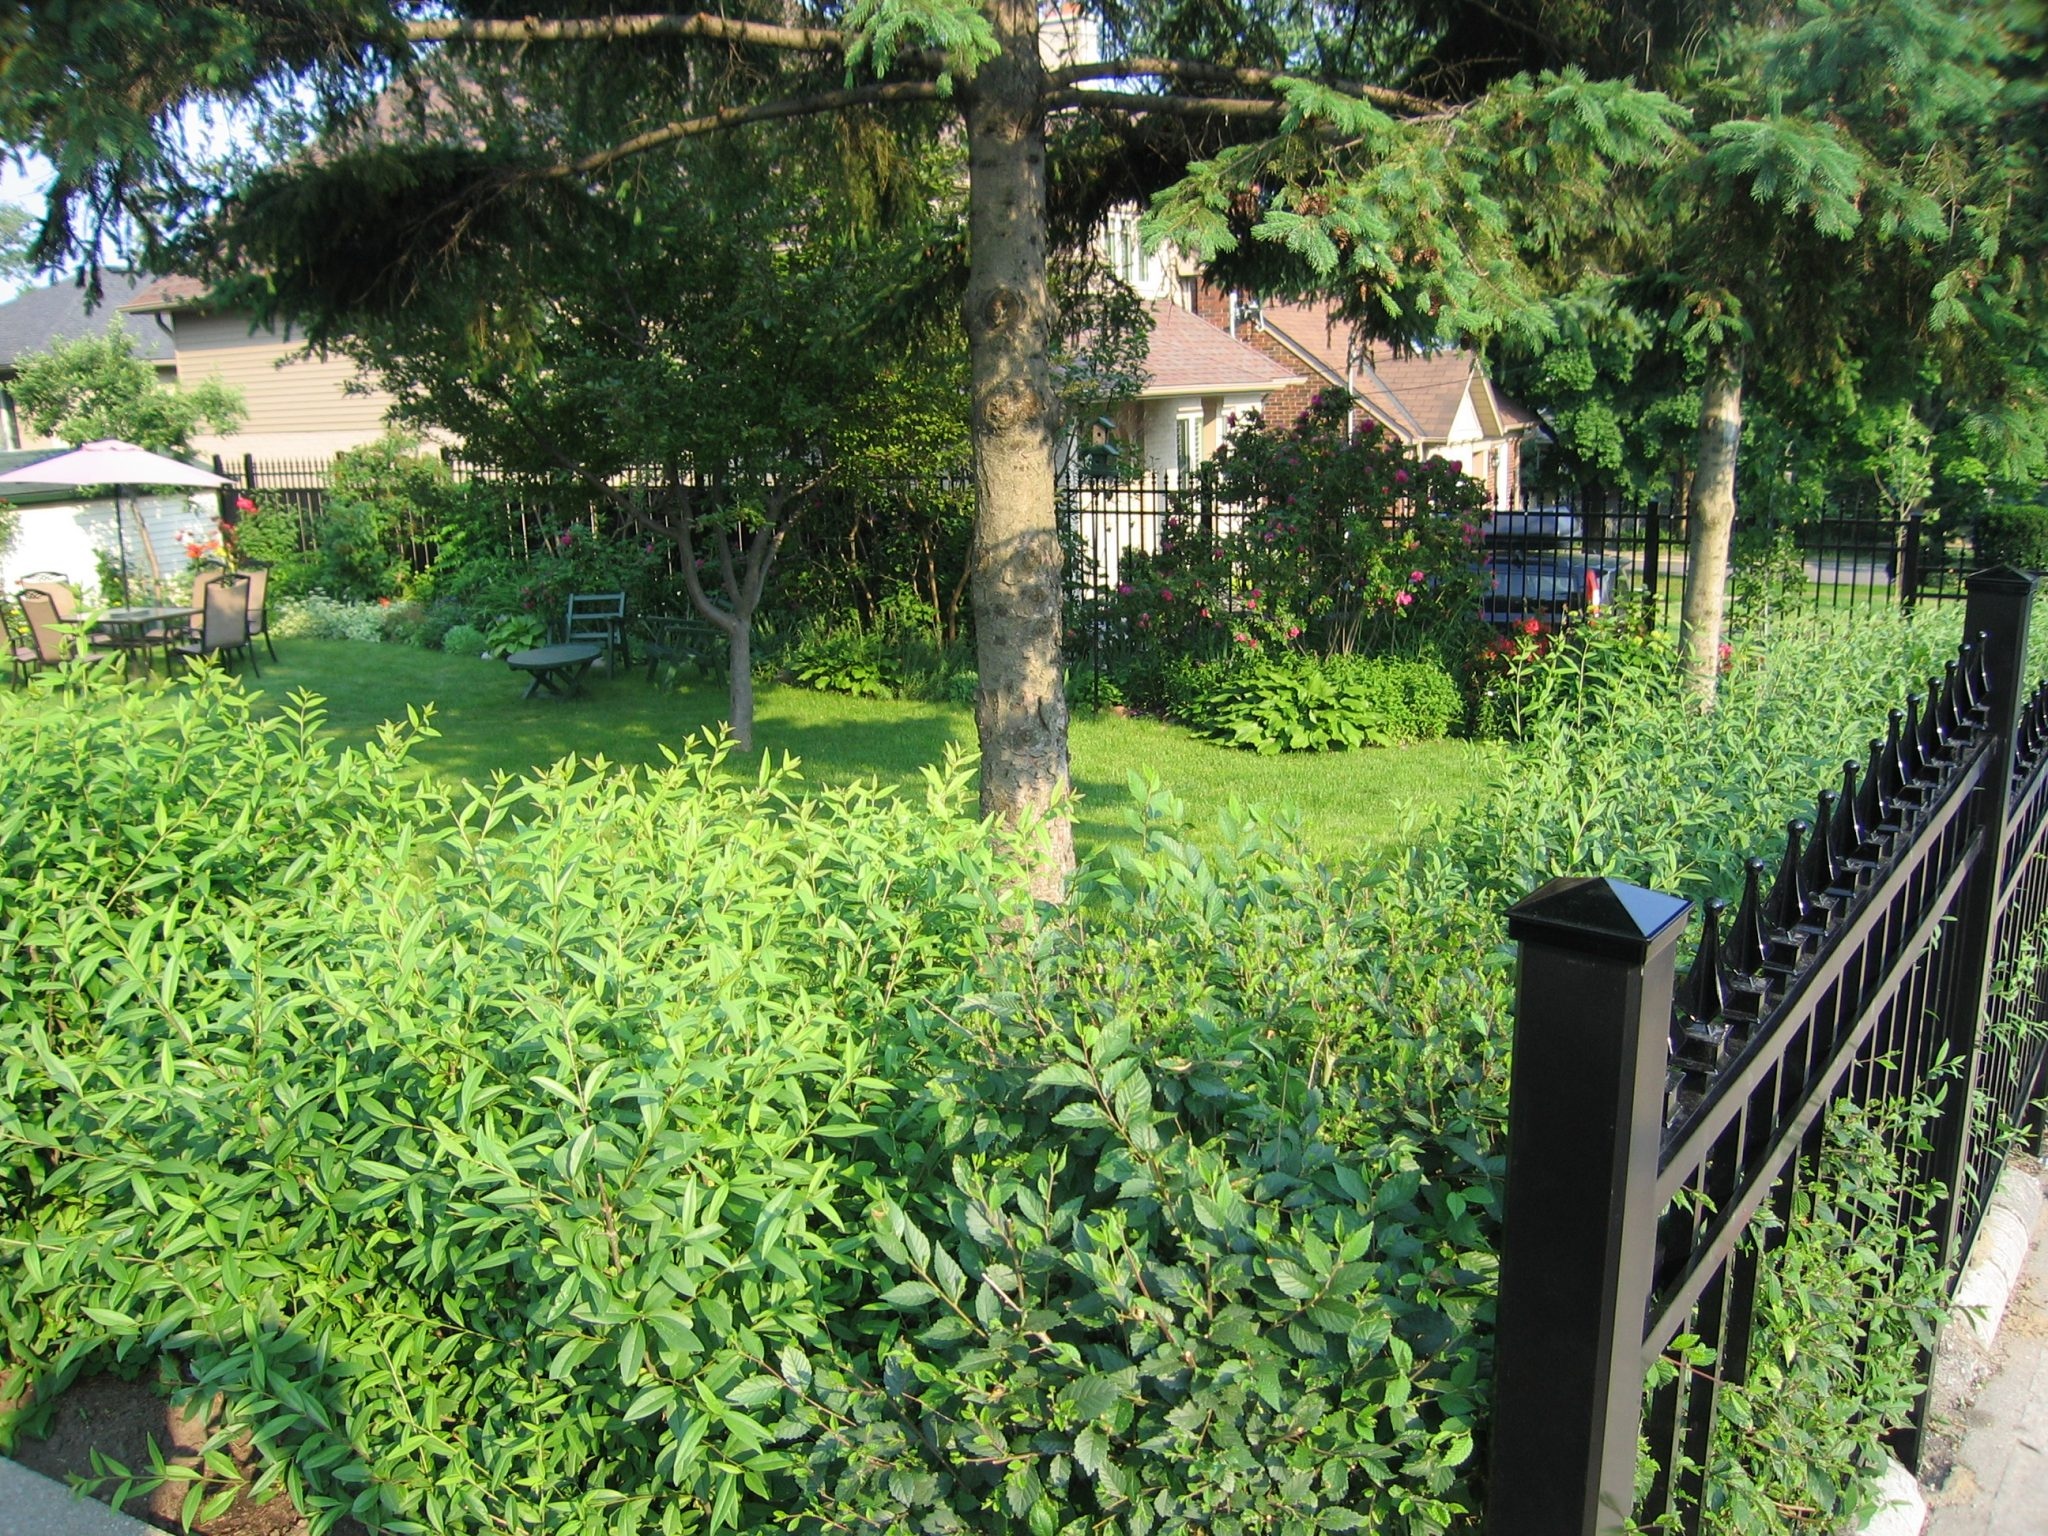 Yard with bushes.